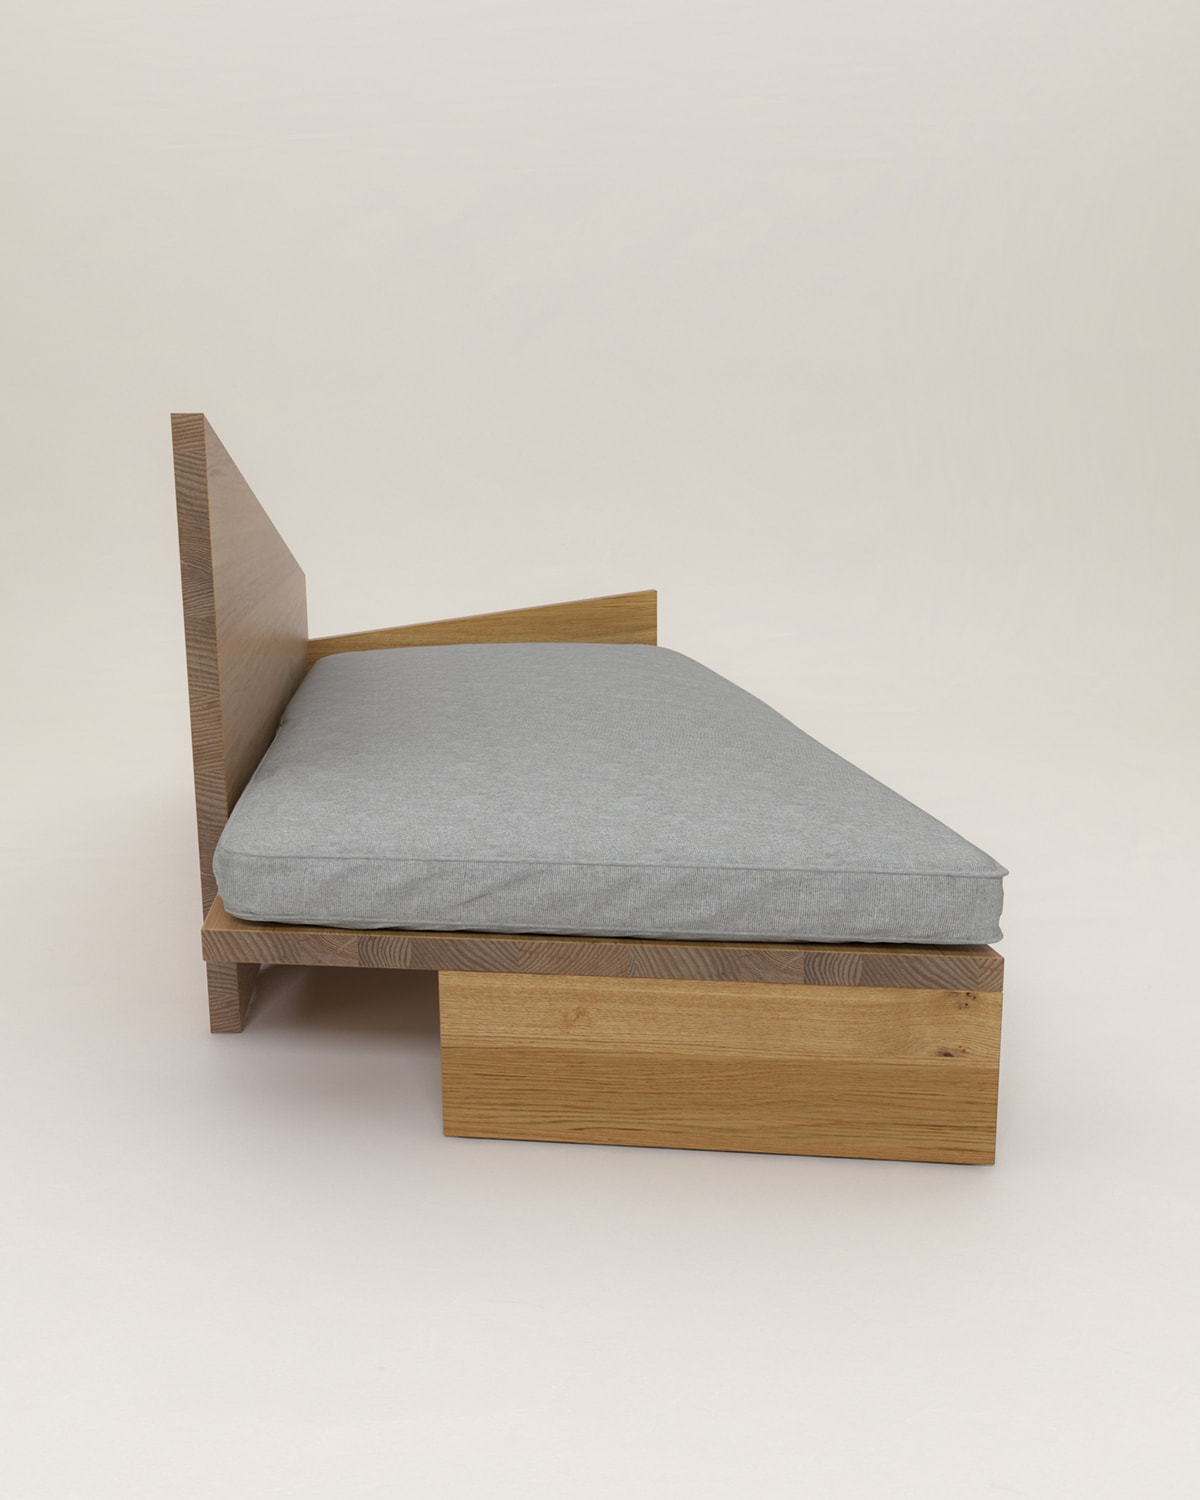 crooked_daybed_06